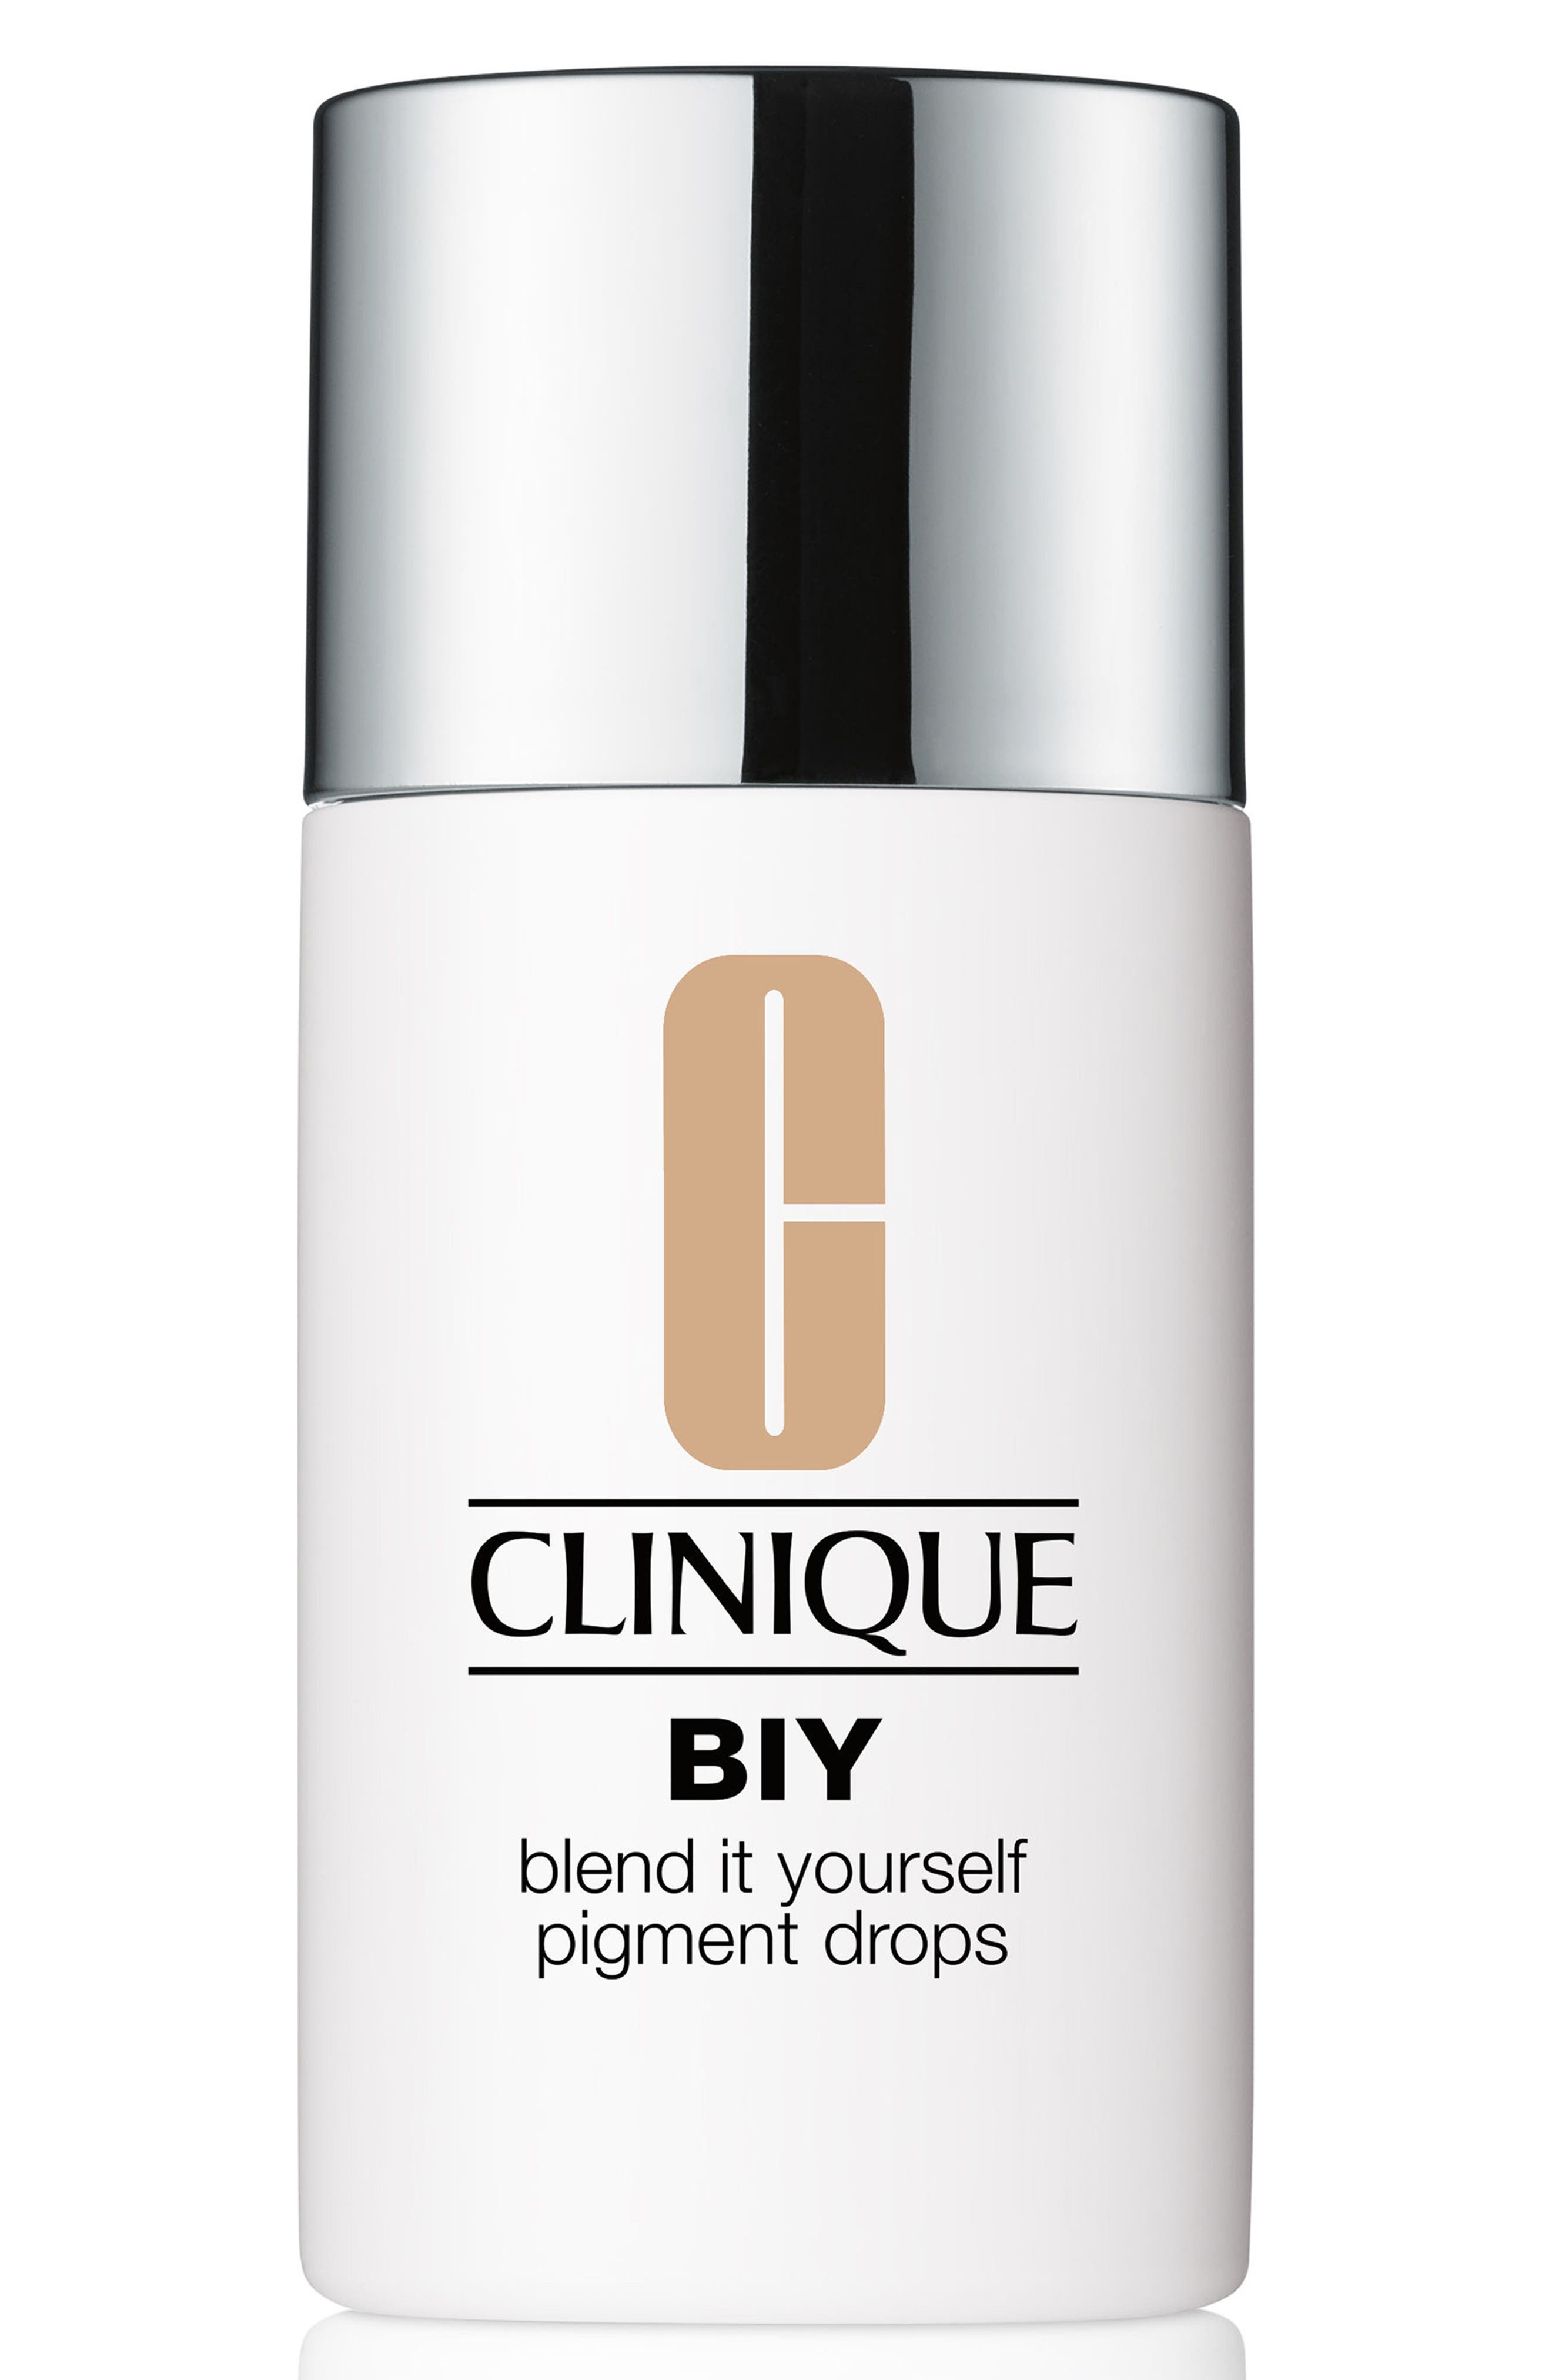 Alternate Image 1 Selected - Clinique BIY Blend It Yourself Pigment Drops